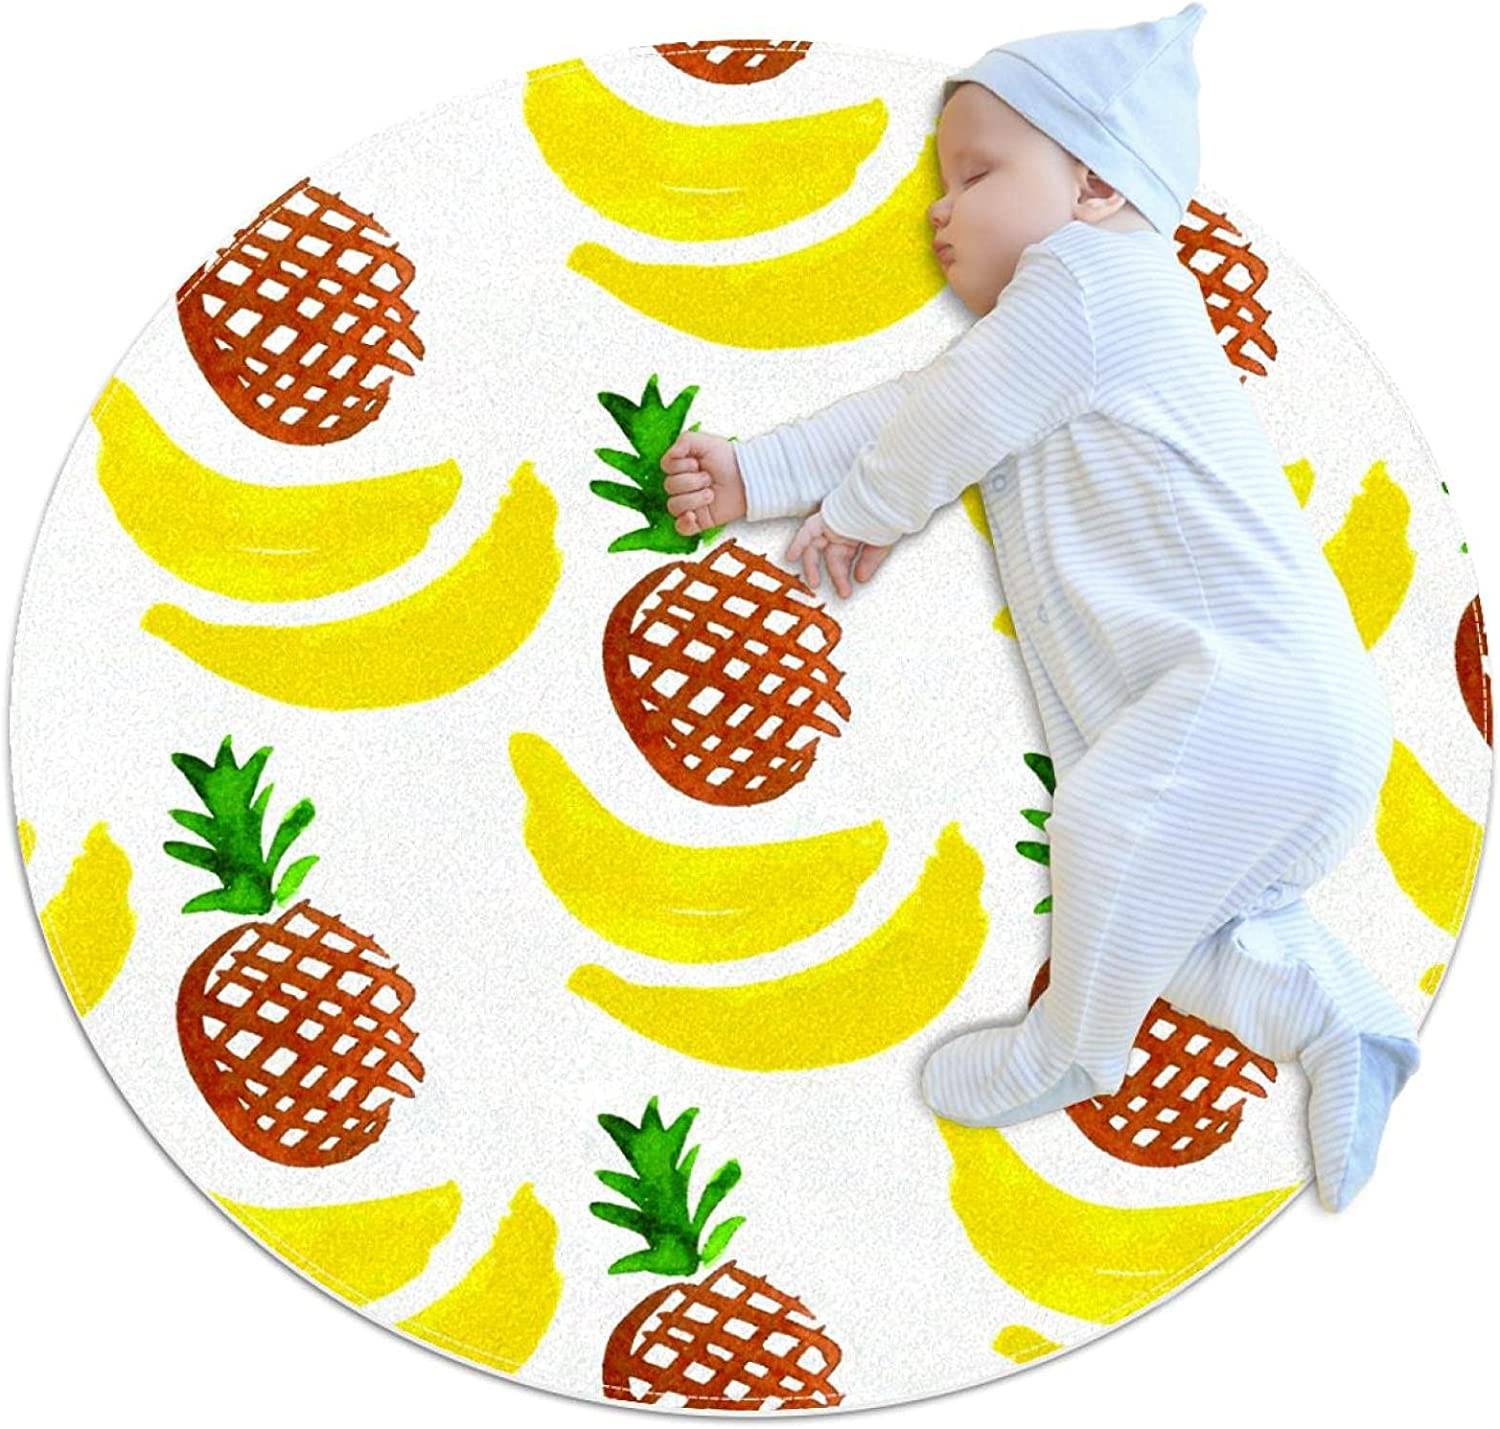 Bananas Purchase Round Area Rug Pattern Yoga Children Ranking integrated 1st place Mat